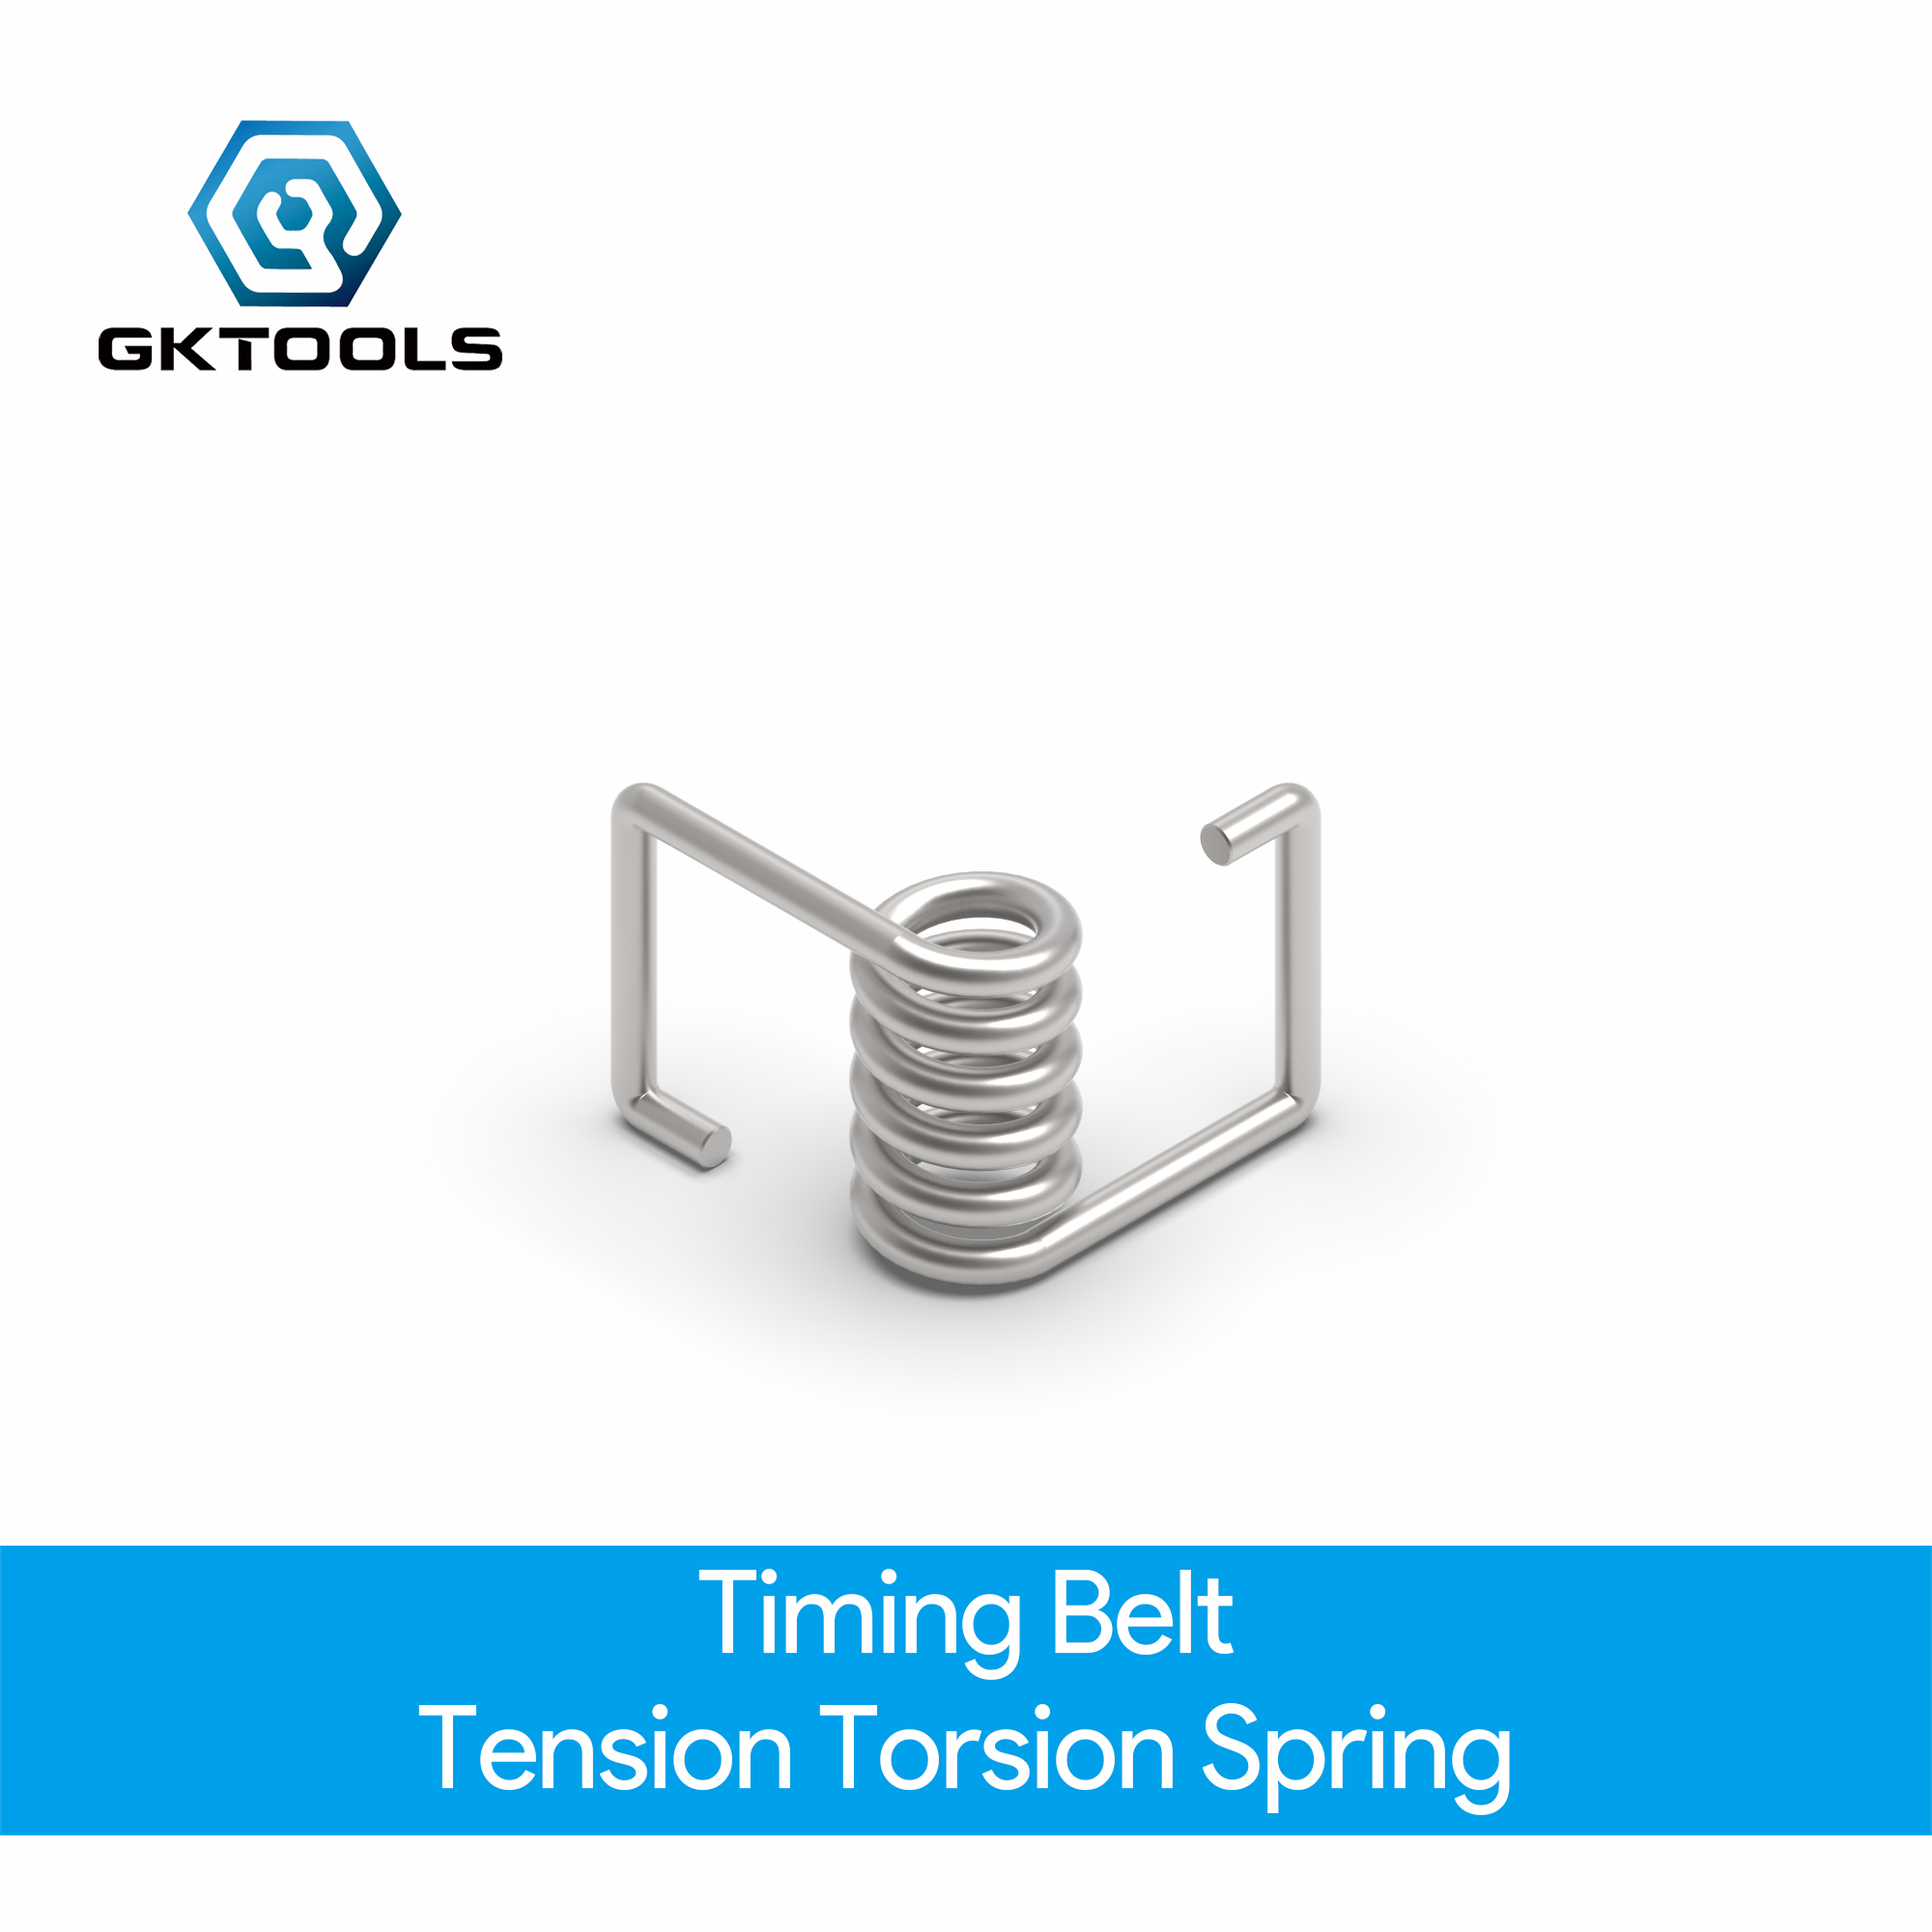 OpenBuilds Timing Belt Tension Torsion Spring